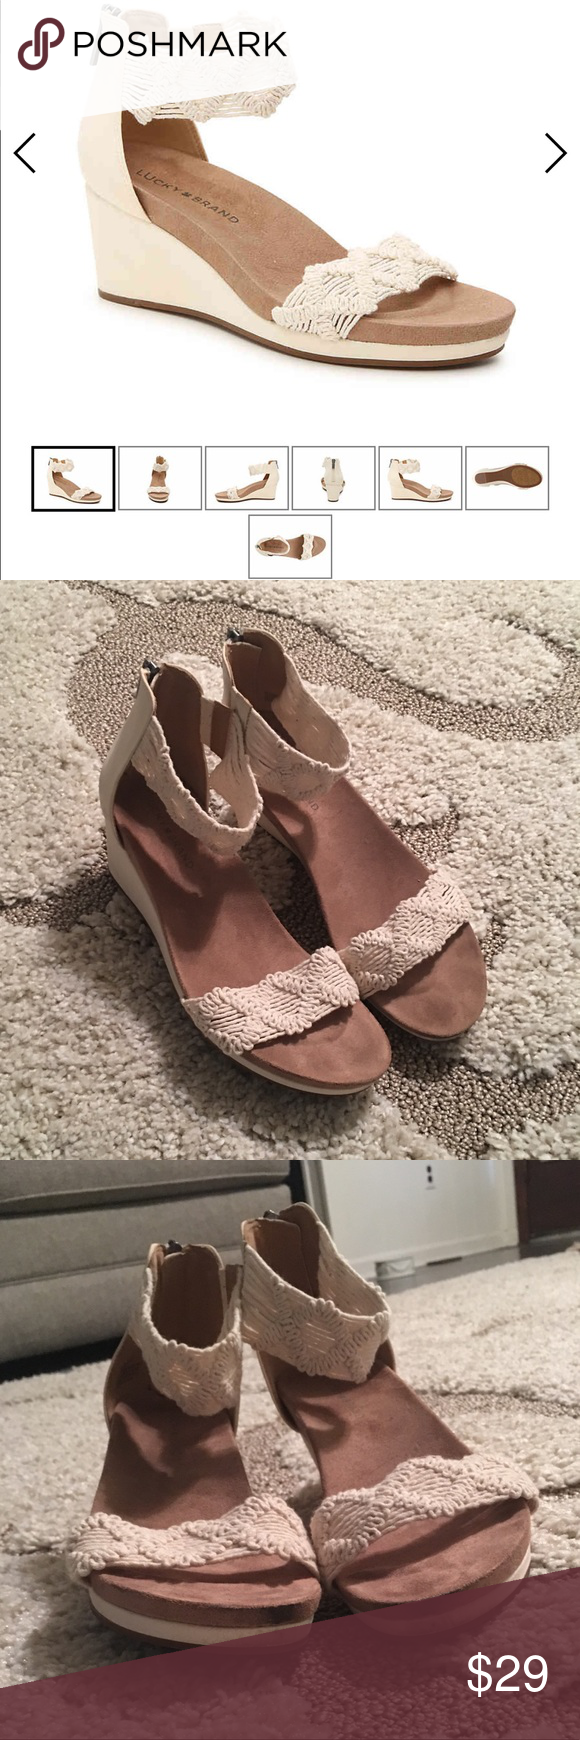 48e52a43a301 Spotted while shopping on Poshmark  Lucky Brand LP Kaydyn Wedge!  poshmark   fashion  shopping  style  Lucky Brand  Shoes